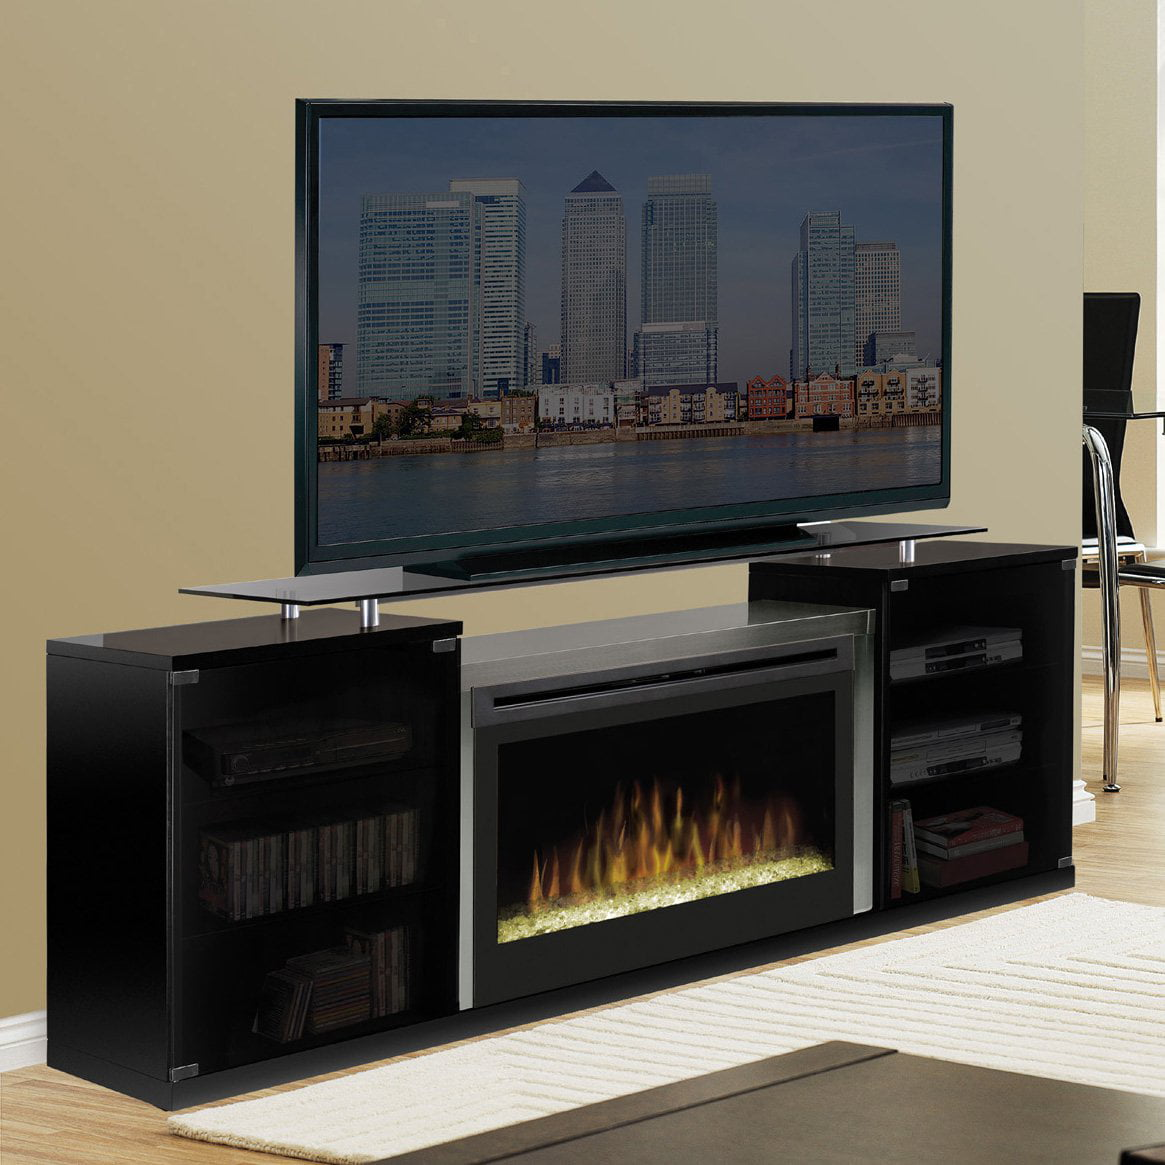 Free Shipping. Buy Dimplex Marana Black Entertainment Center Electric Fireplace at Walmart.com